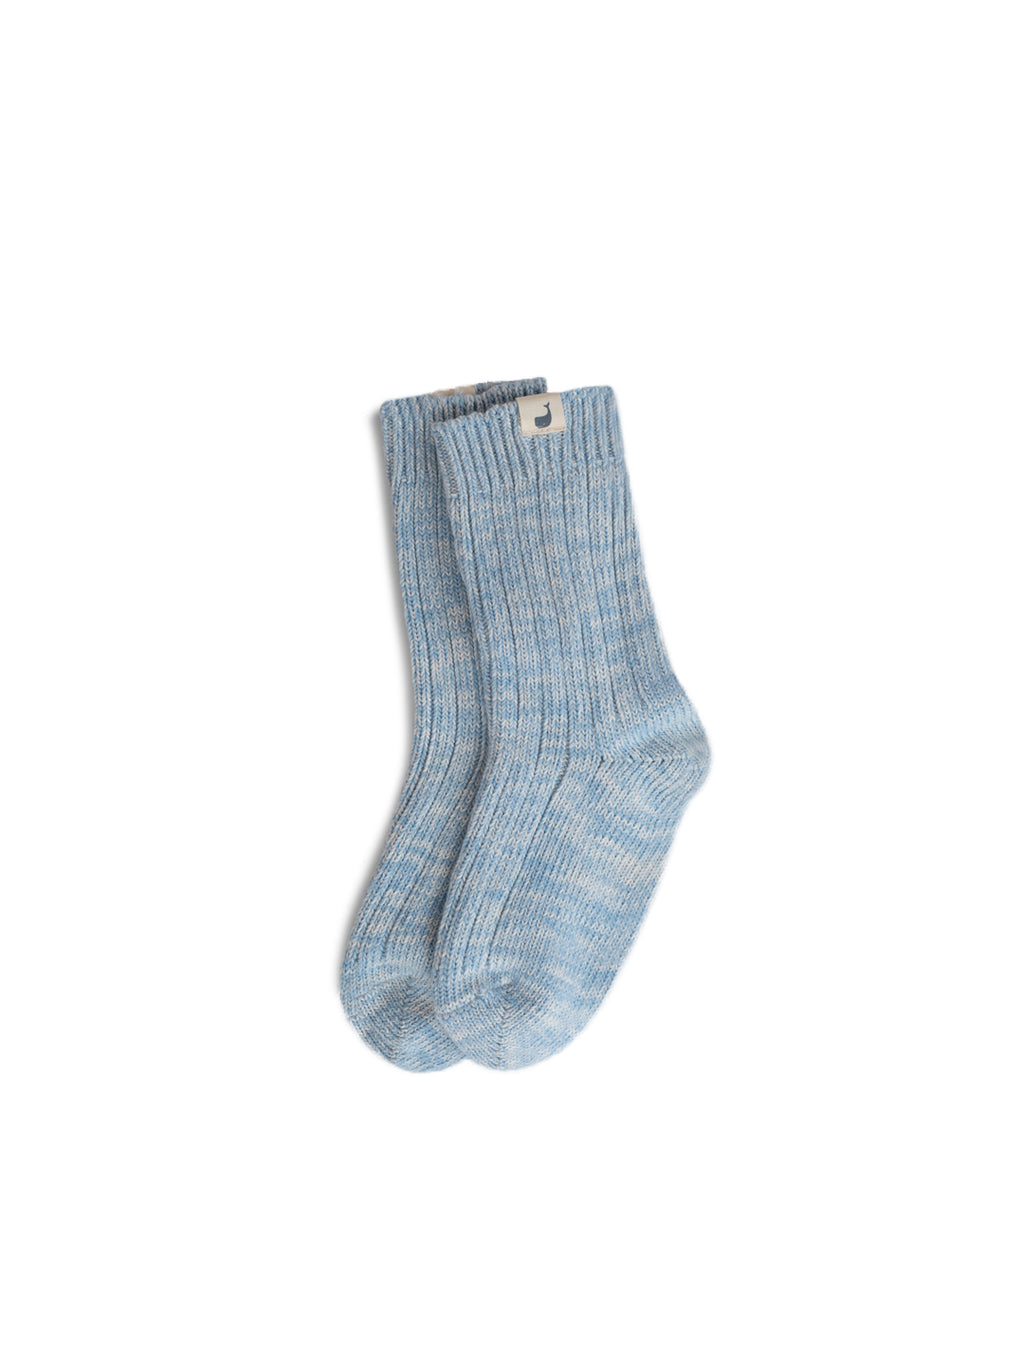 Alofi Socks Woman - Blue